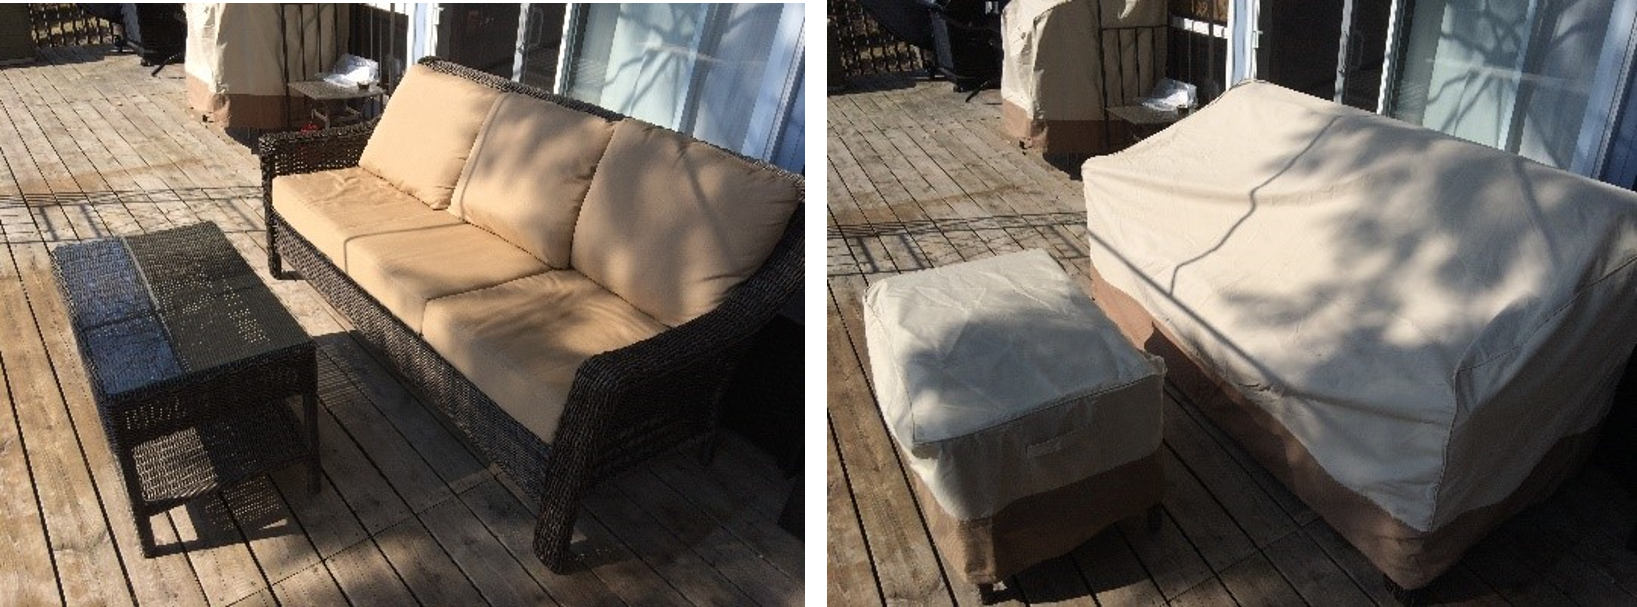 Buy quality patio furniture covers to enhance the look of your patio or deck